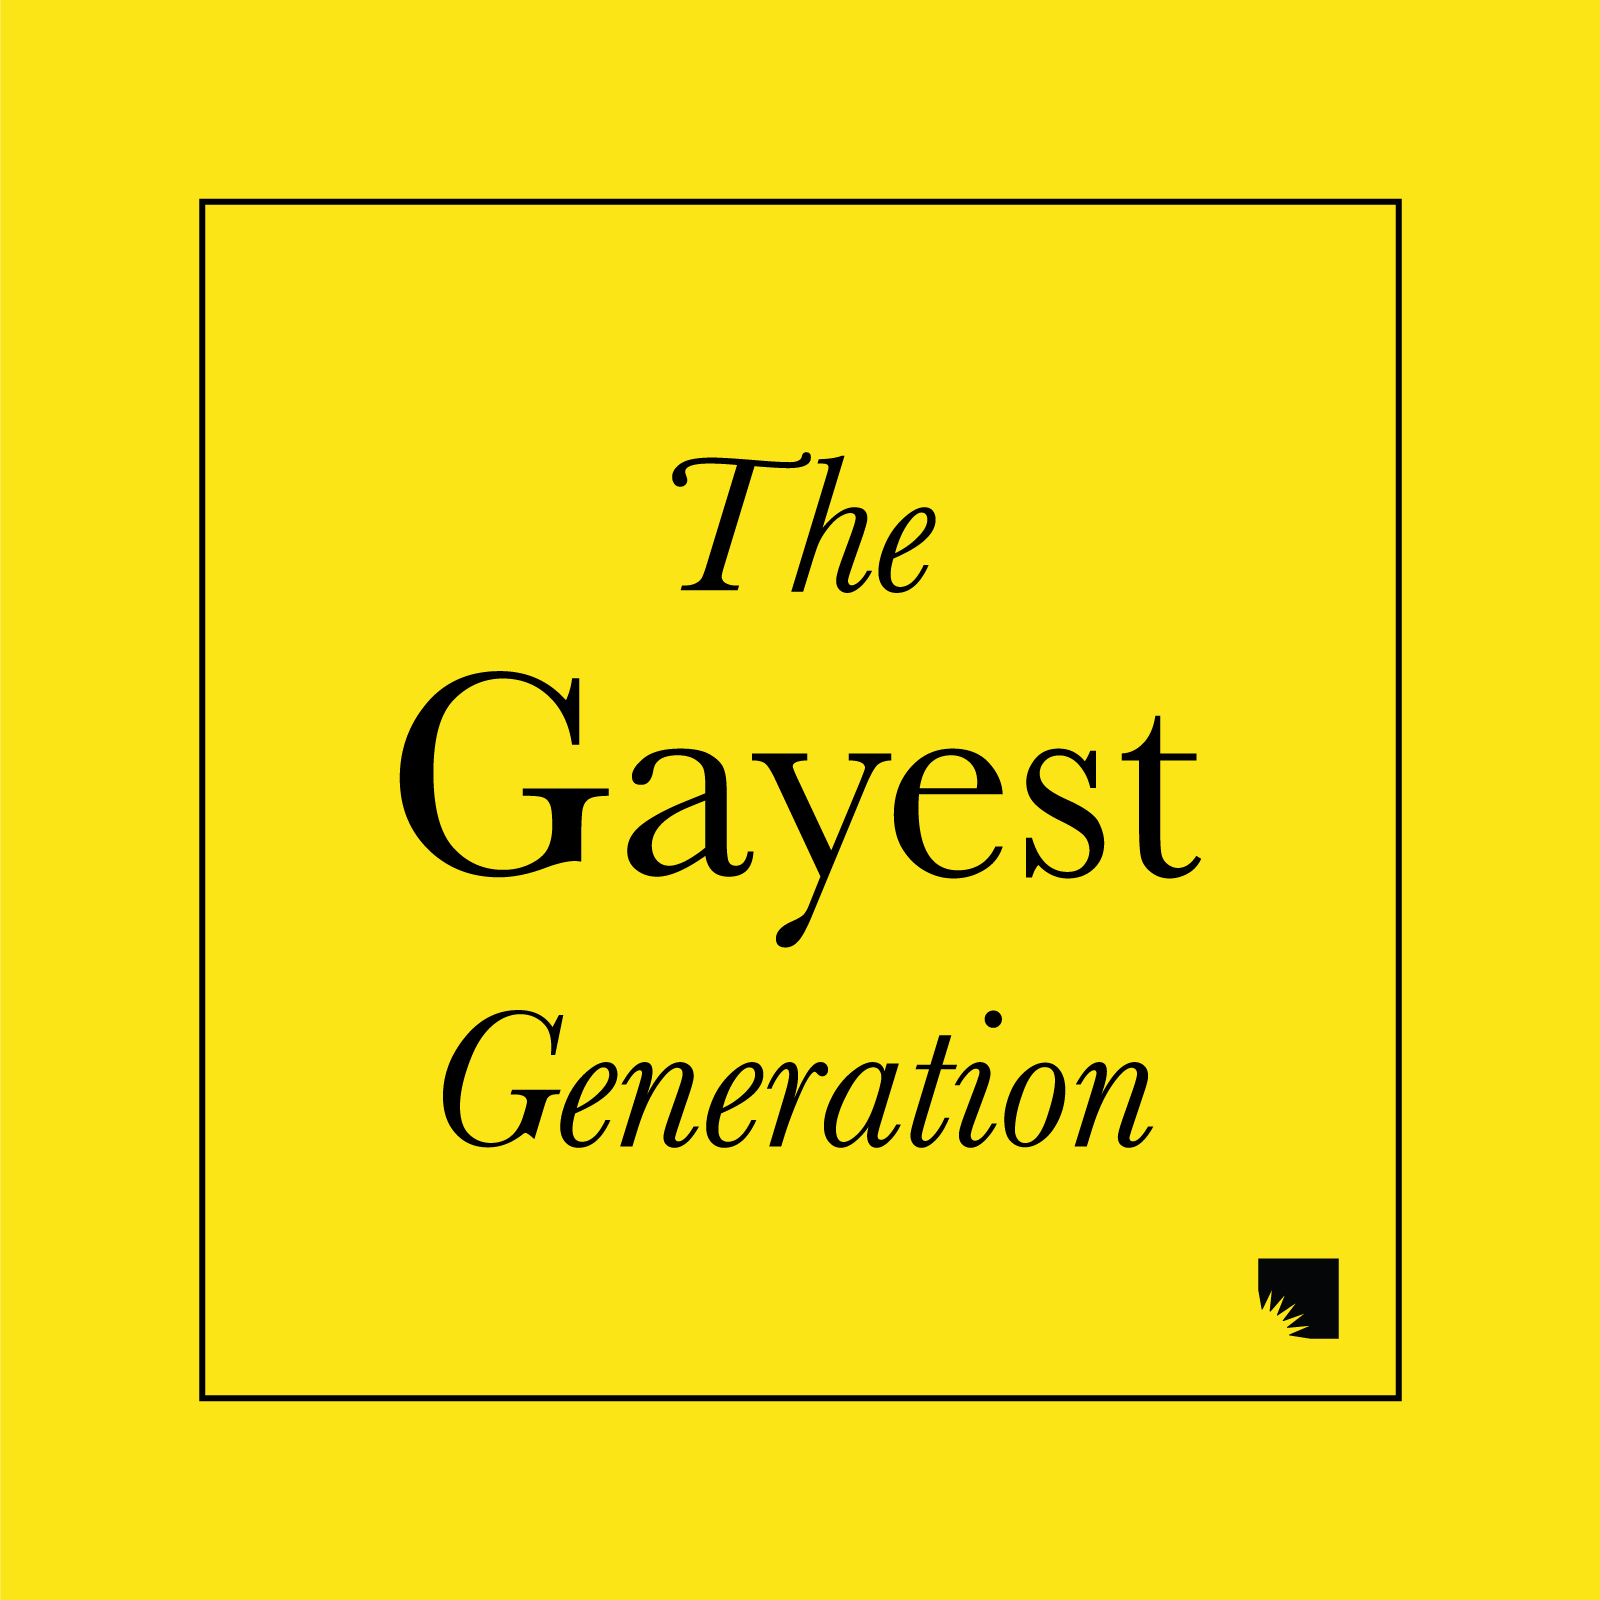 Promotional image for The Gayest Generation Ep. 1 - Pat Buerkel podcast